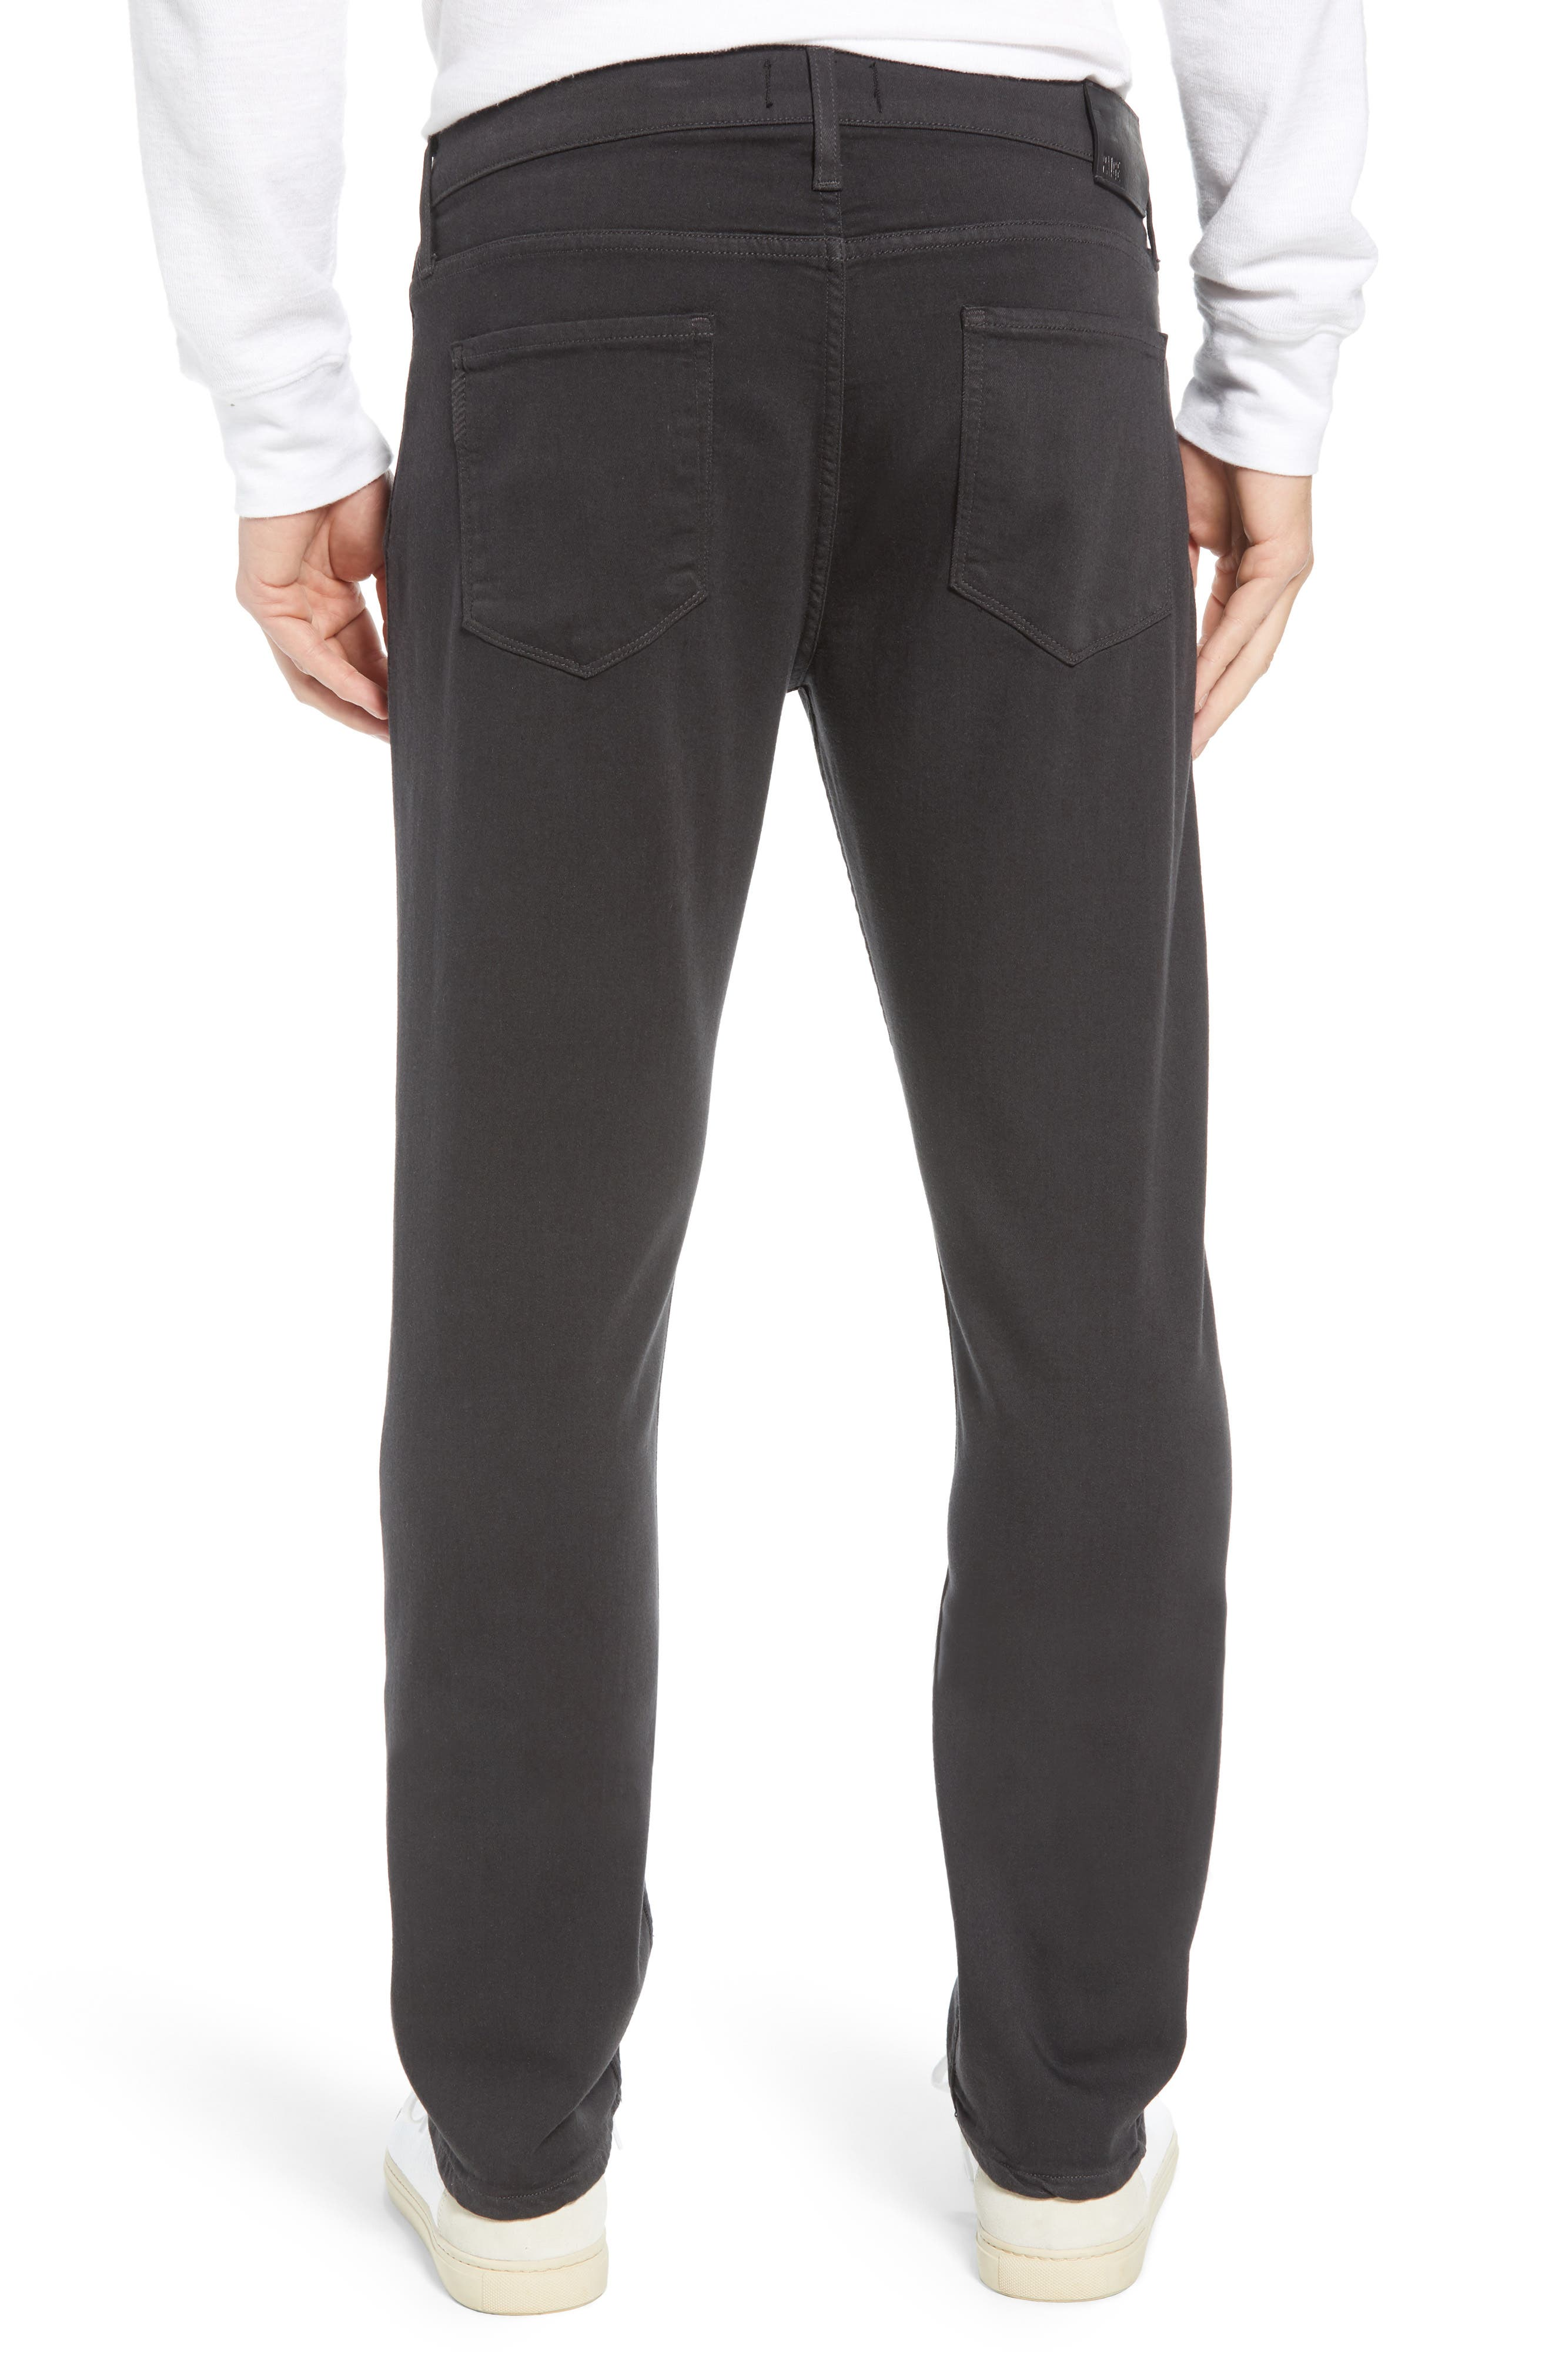 Transcend - Normandie Straight Leg Jeans,                             Alternate thumbnail 2, color,                             MIDNIGHT GREY